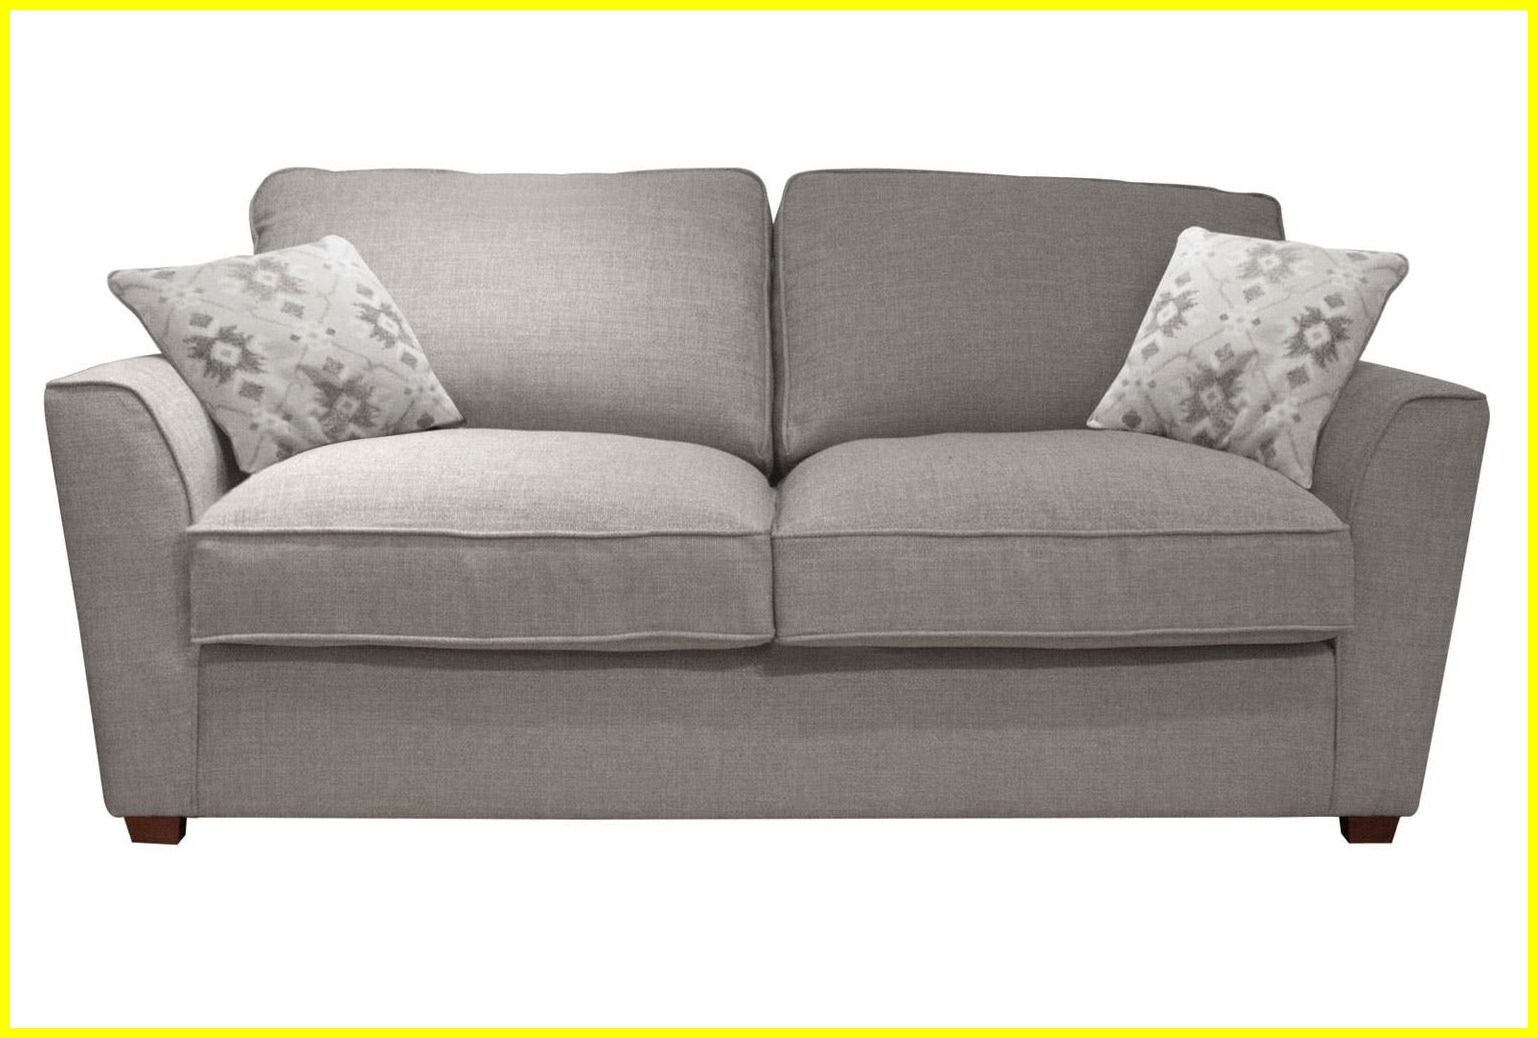 39 Reference Of Bed Sofa Harvey Norman In 2020 Sofa Shop Corner Sofa Fabric Grey Leather Sofa